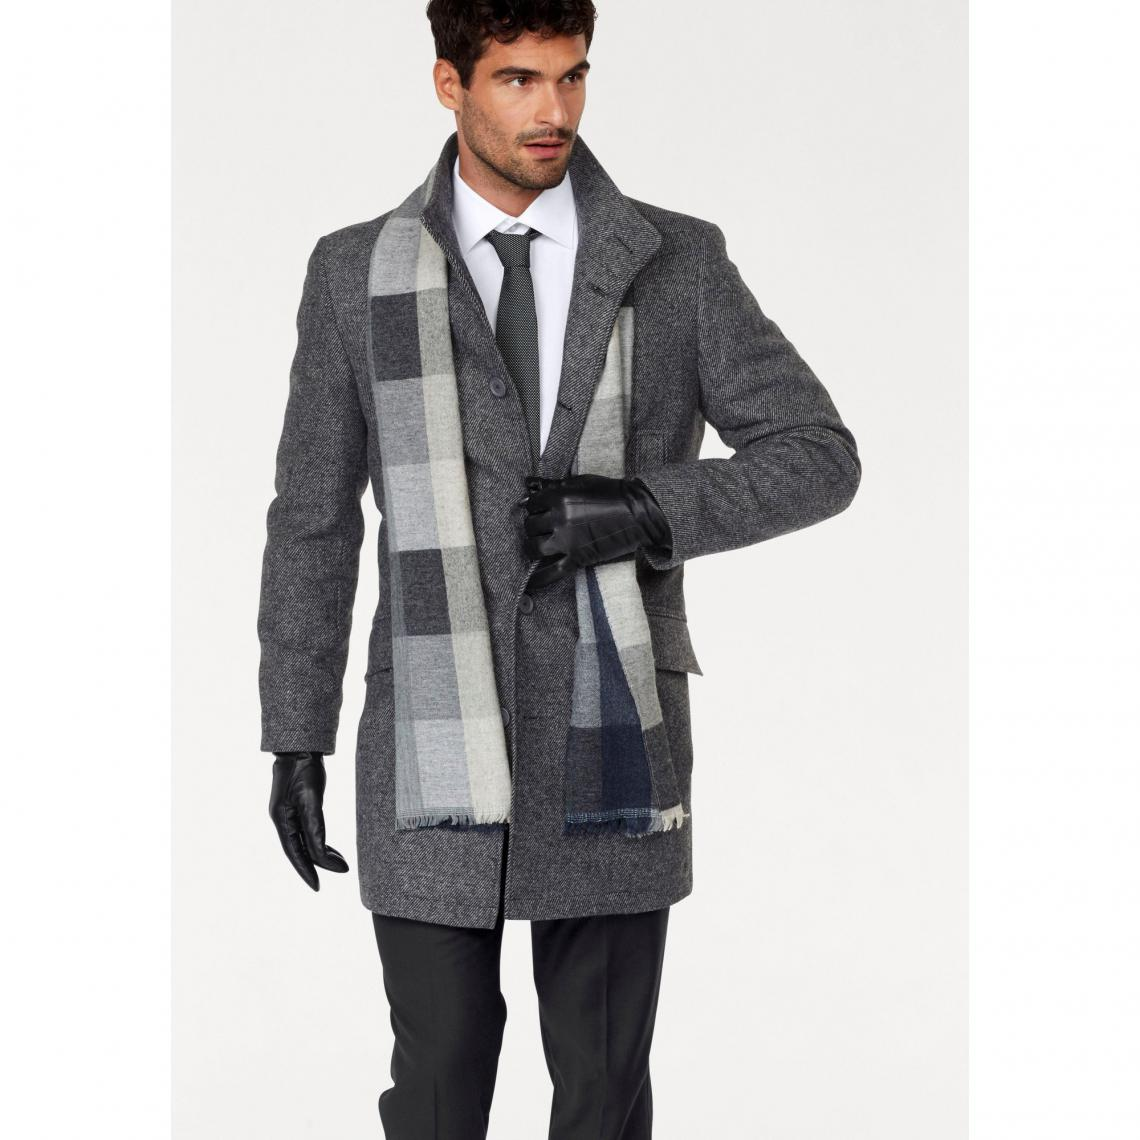 Manches Bruno Anthracite Manteau Longues Gris Chiné Banani Homme xO5FIw